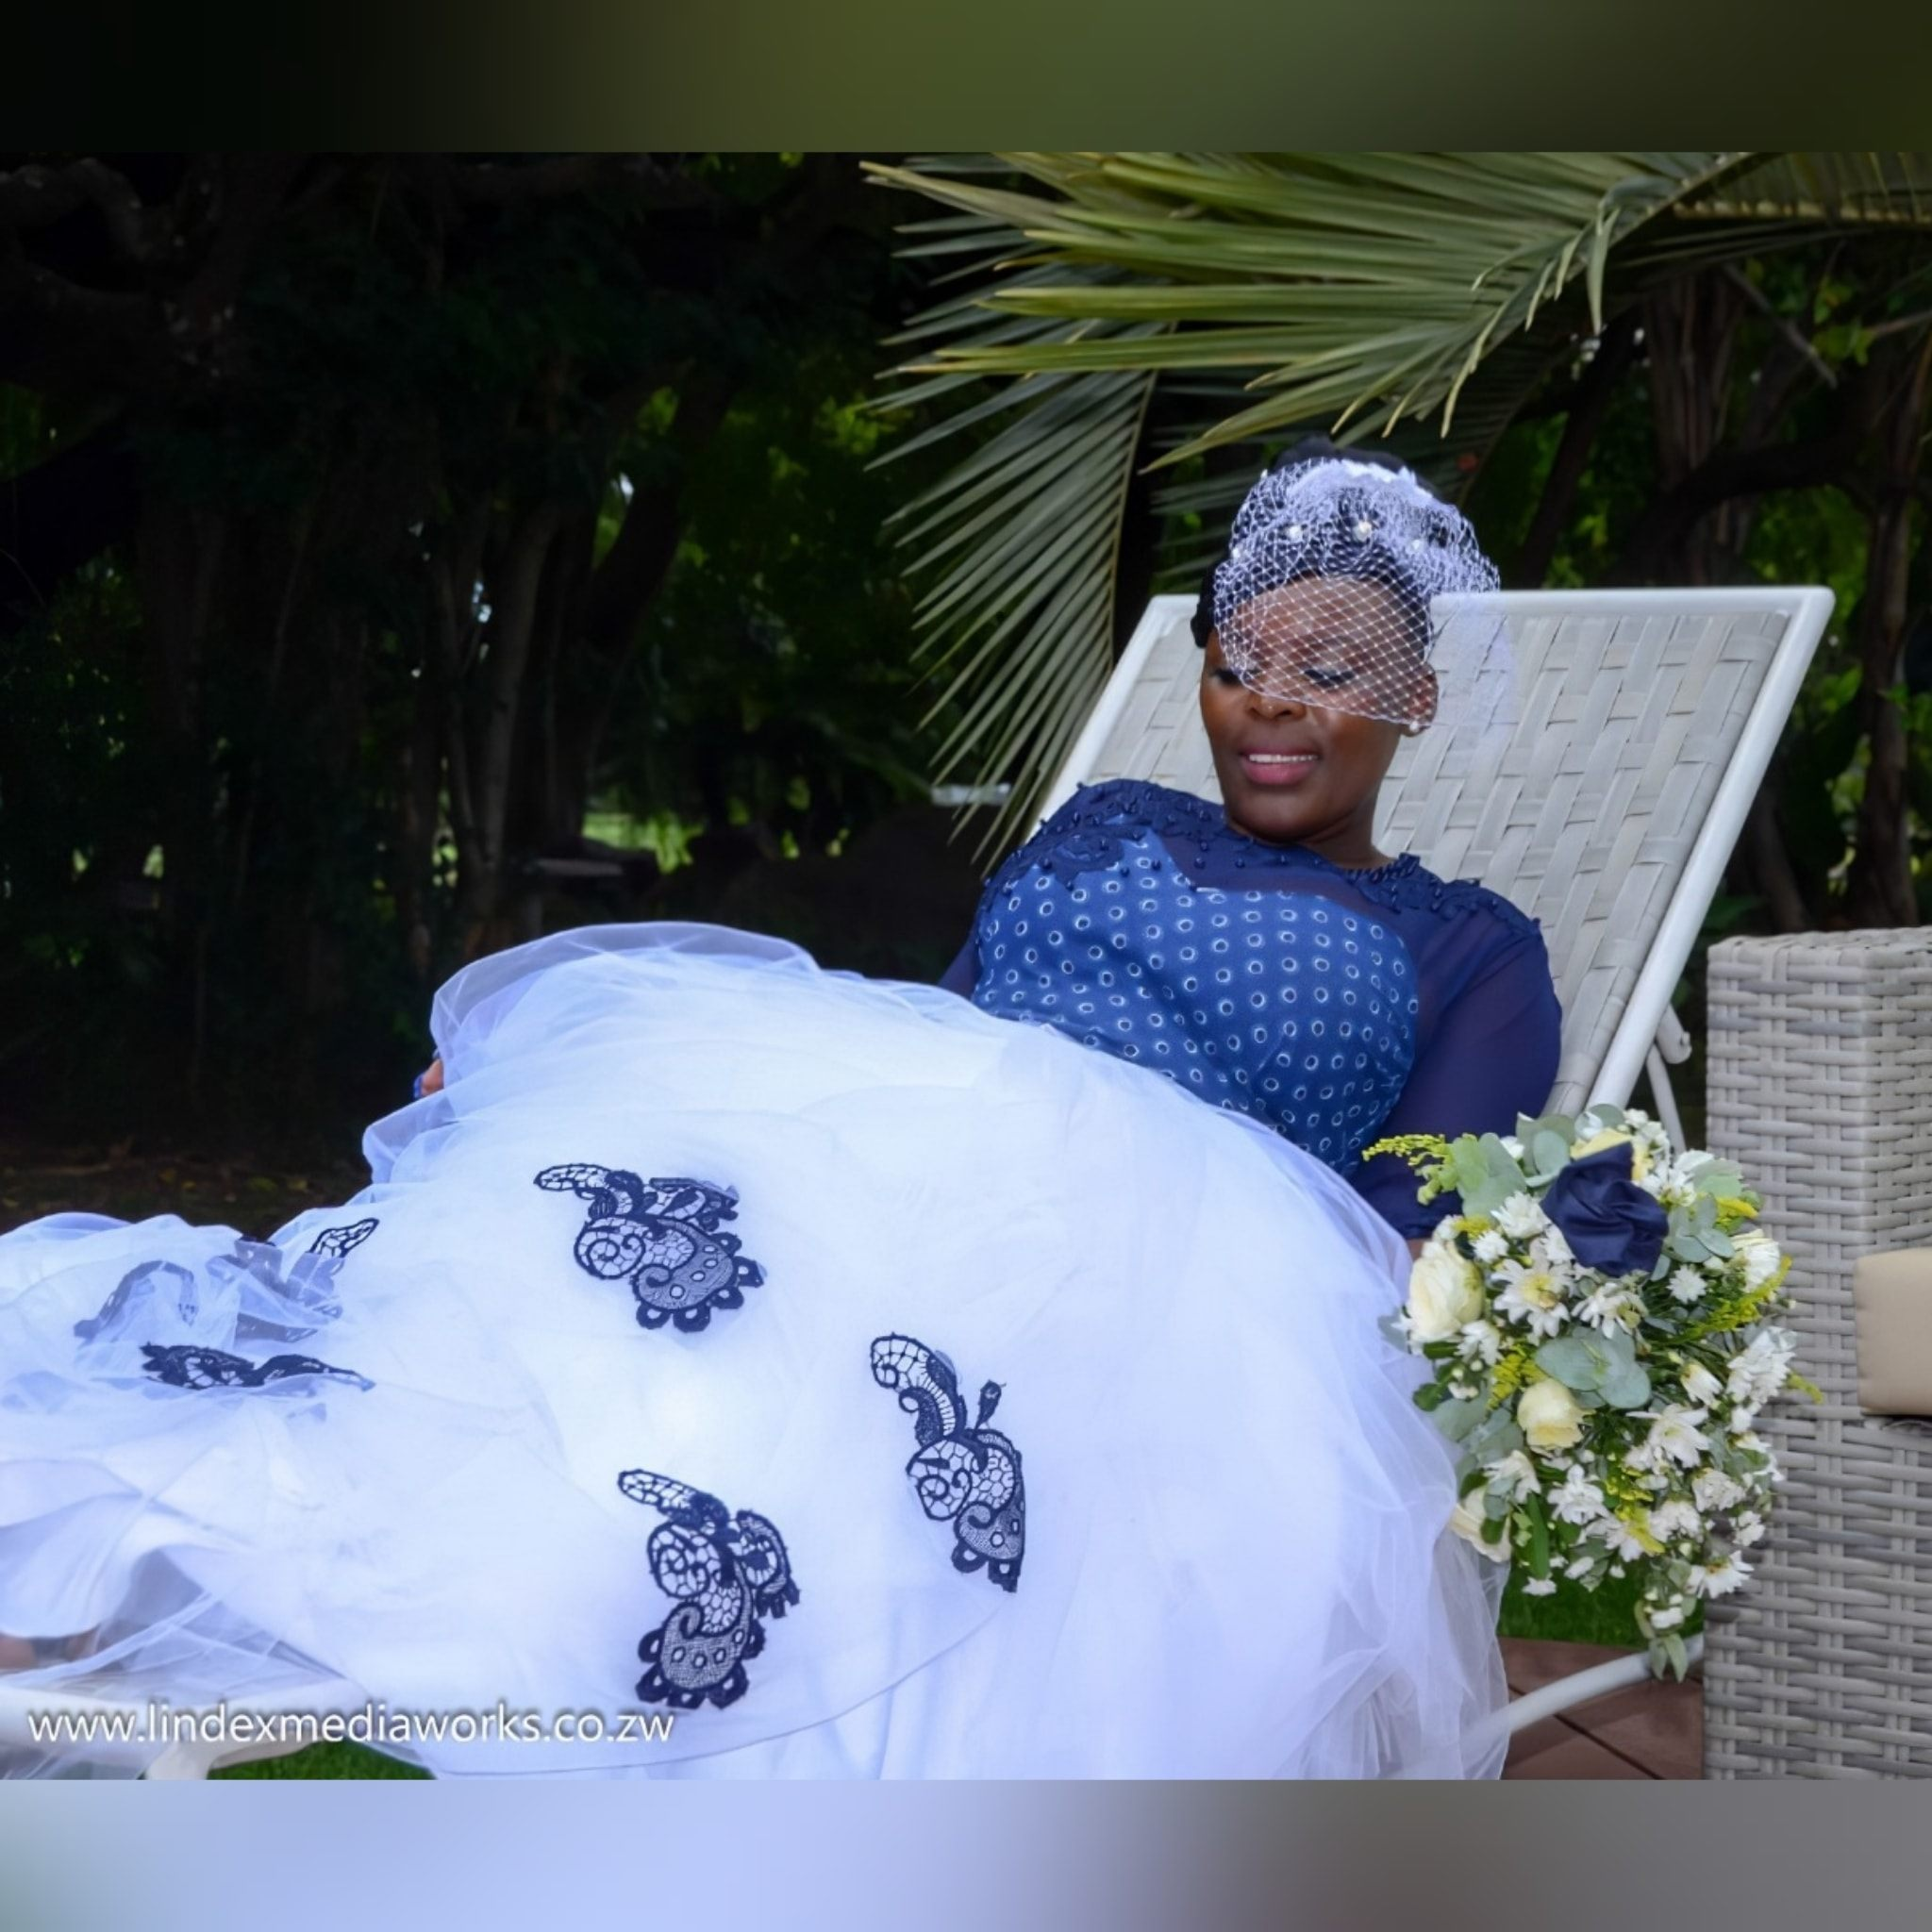 Modern african traditional wedding dress with lace, beads and pearls 9 modern african traditional wedding dress created for my client's special day. With a traditional blue bodice print detailed with lace, beads and pearls. White tulle bottom with a touch of blue lace detail. With an illusion neckline and sleeves. And a birdcage veil. #weddingdress #africanweddingdress #brides #traditionalbrides #passion4fashion #mariselaveludo